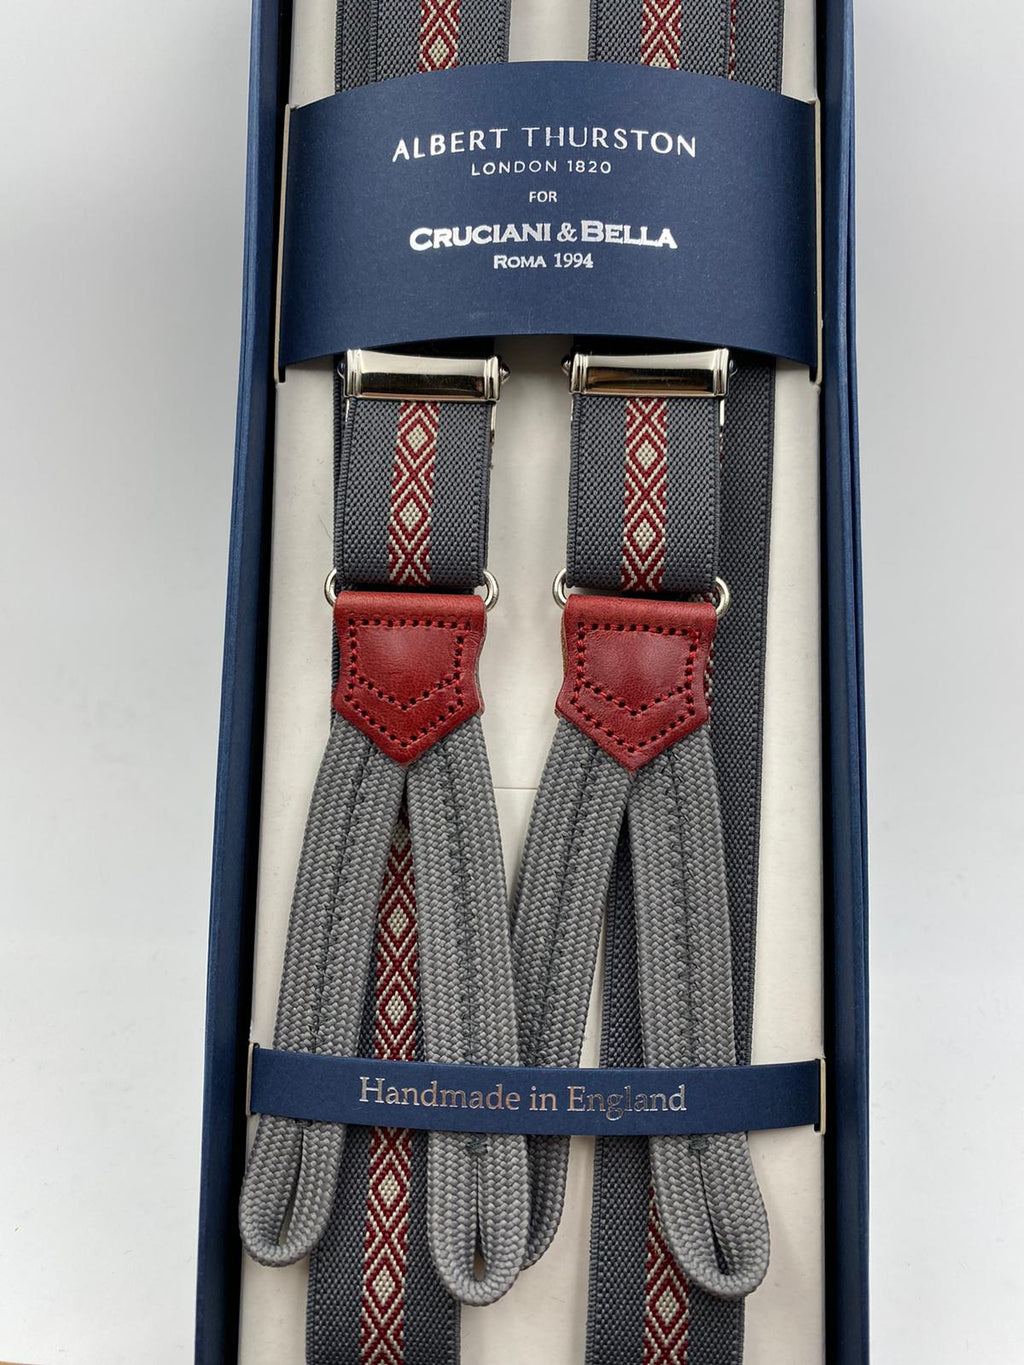 Albert Thurston for Cruciani & Bella Made in England Adjustable Sizing 25 mm elastic braces Grey and Red Motif Braid ends Y-Shaped Nickel Fittings Size: L #4900